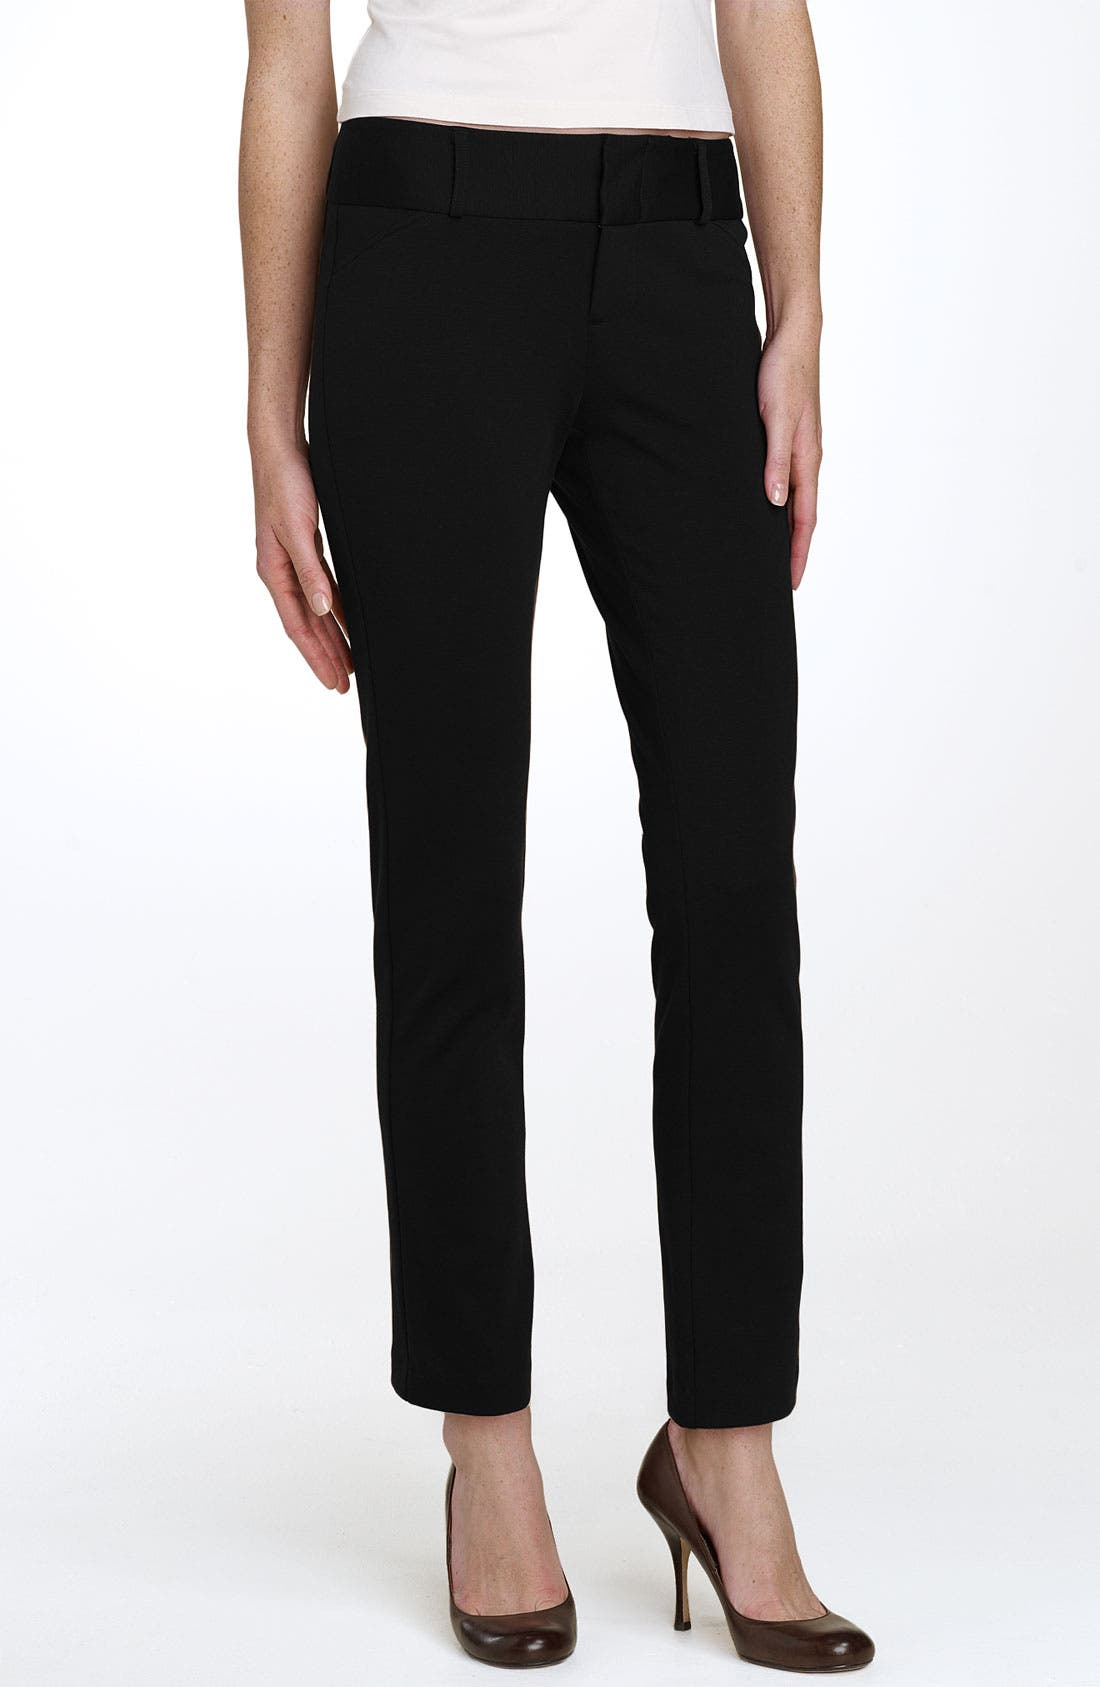 Alternate Image 1 Selected - MICHAEL Michael Kors Straight Leg Ponte Knit Pants (Regular & Petite)